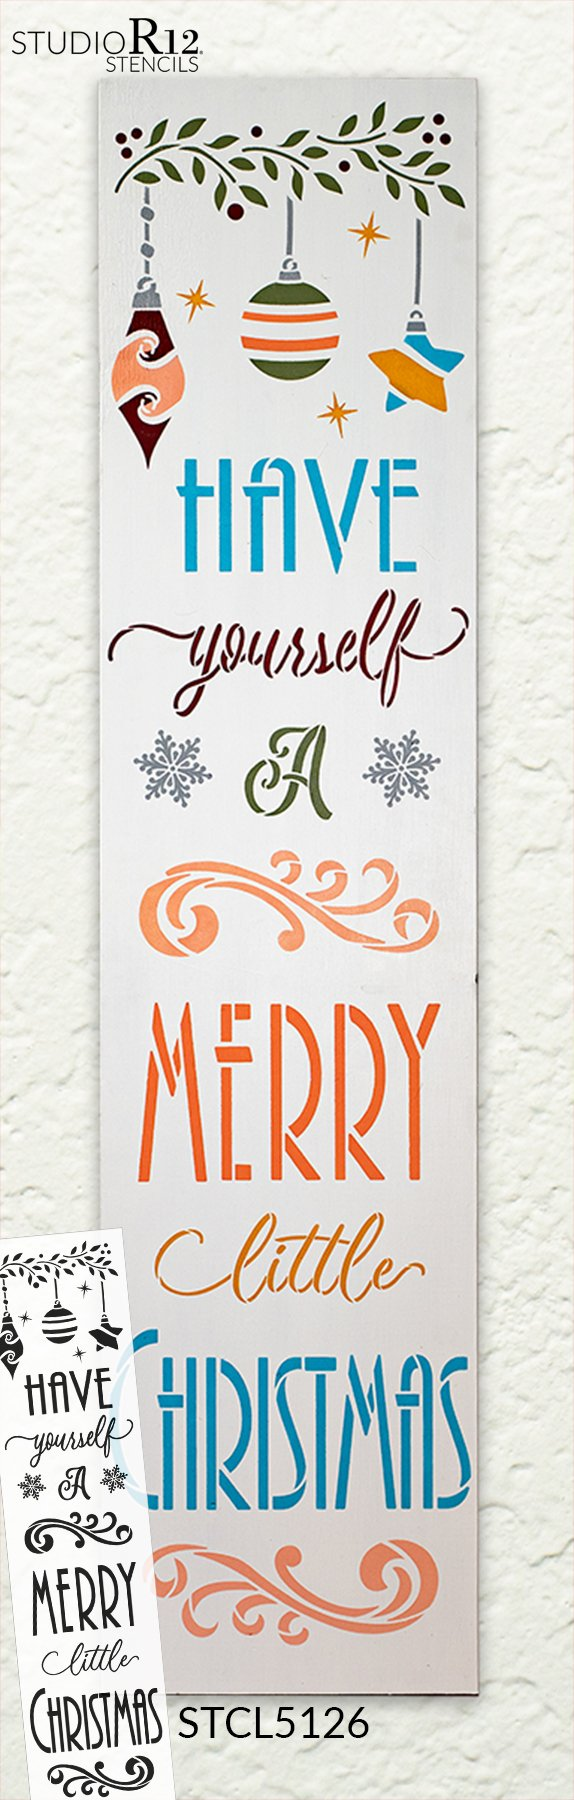 Merry Christmas Stencil RE-USABLE 9 x 7.5 inch